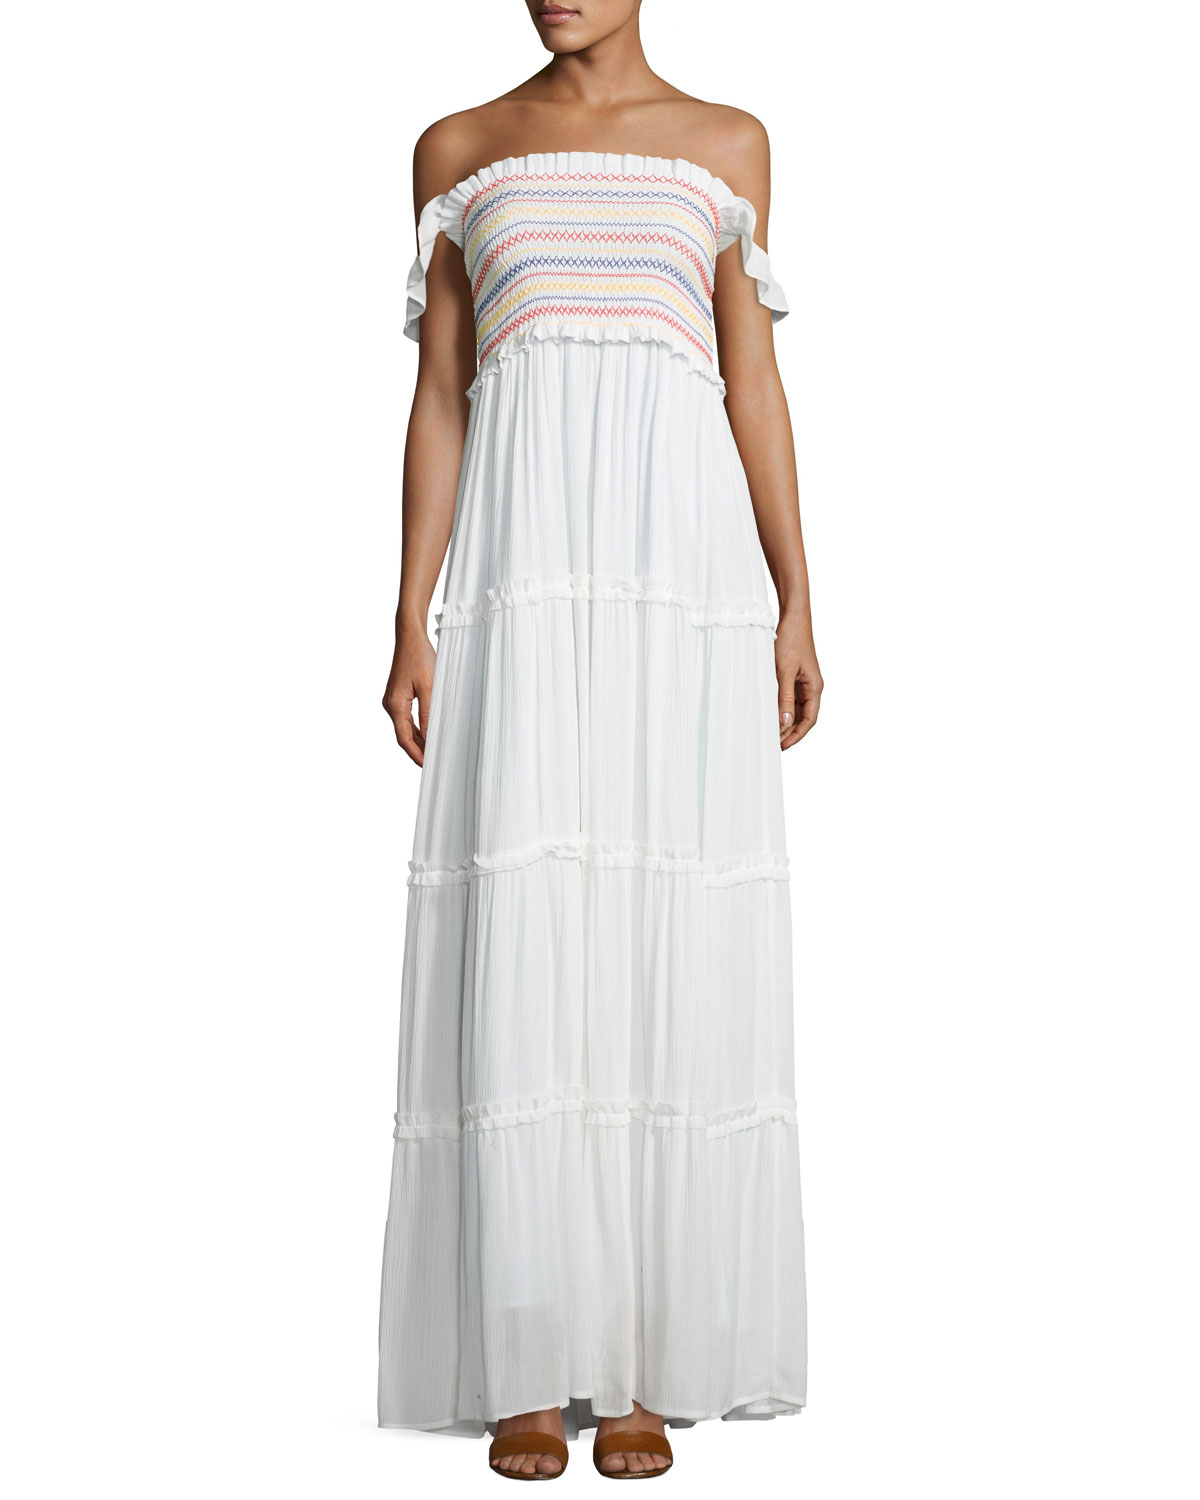 9e68f528aa Tory Burch Smocked Off-the-Shoulder Beach Maxi Dress